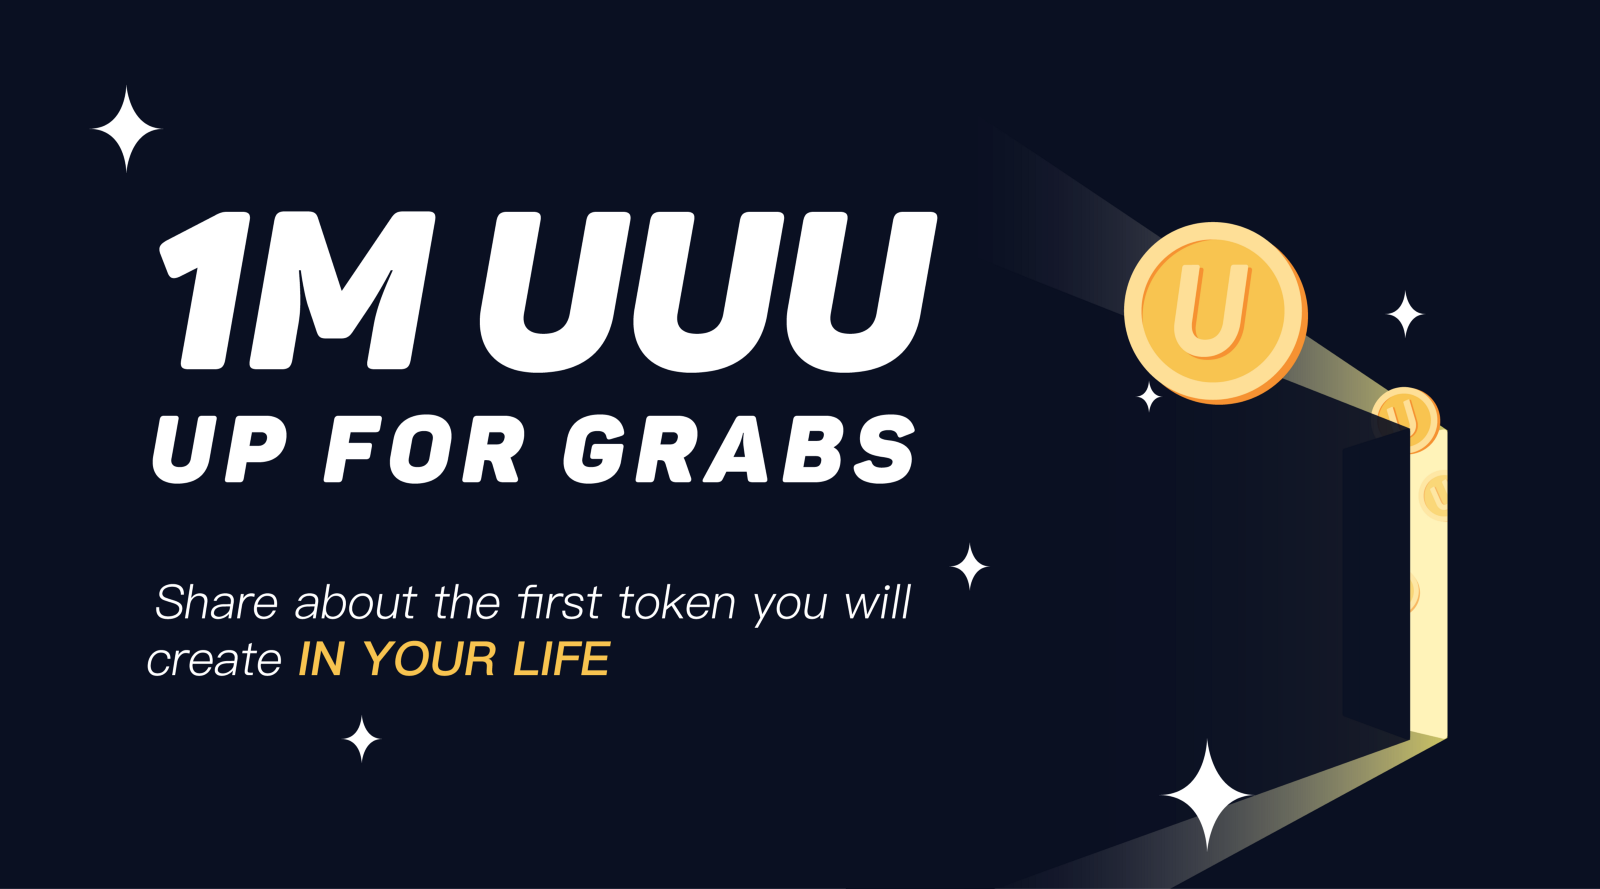 U 2018 Uuu >> 1m Uuu Up For Grabs Share About The First Token You Will Create In